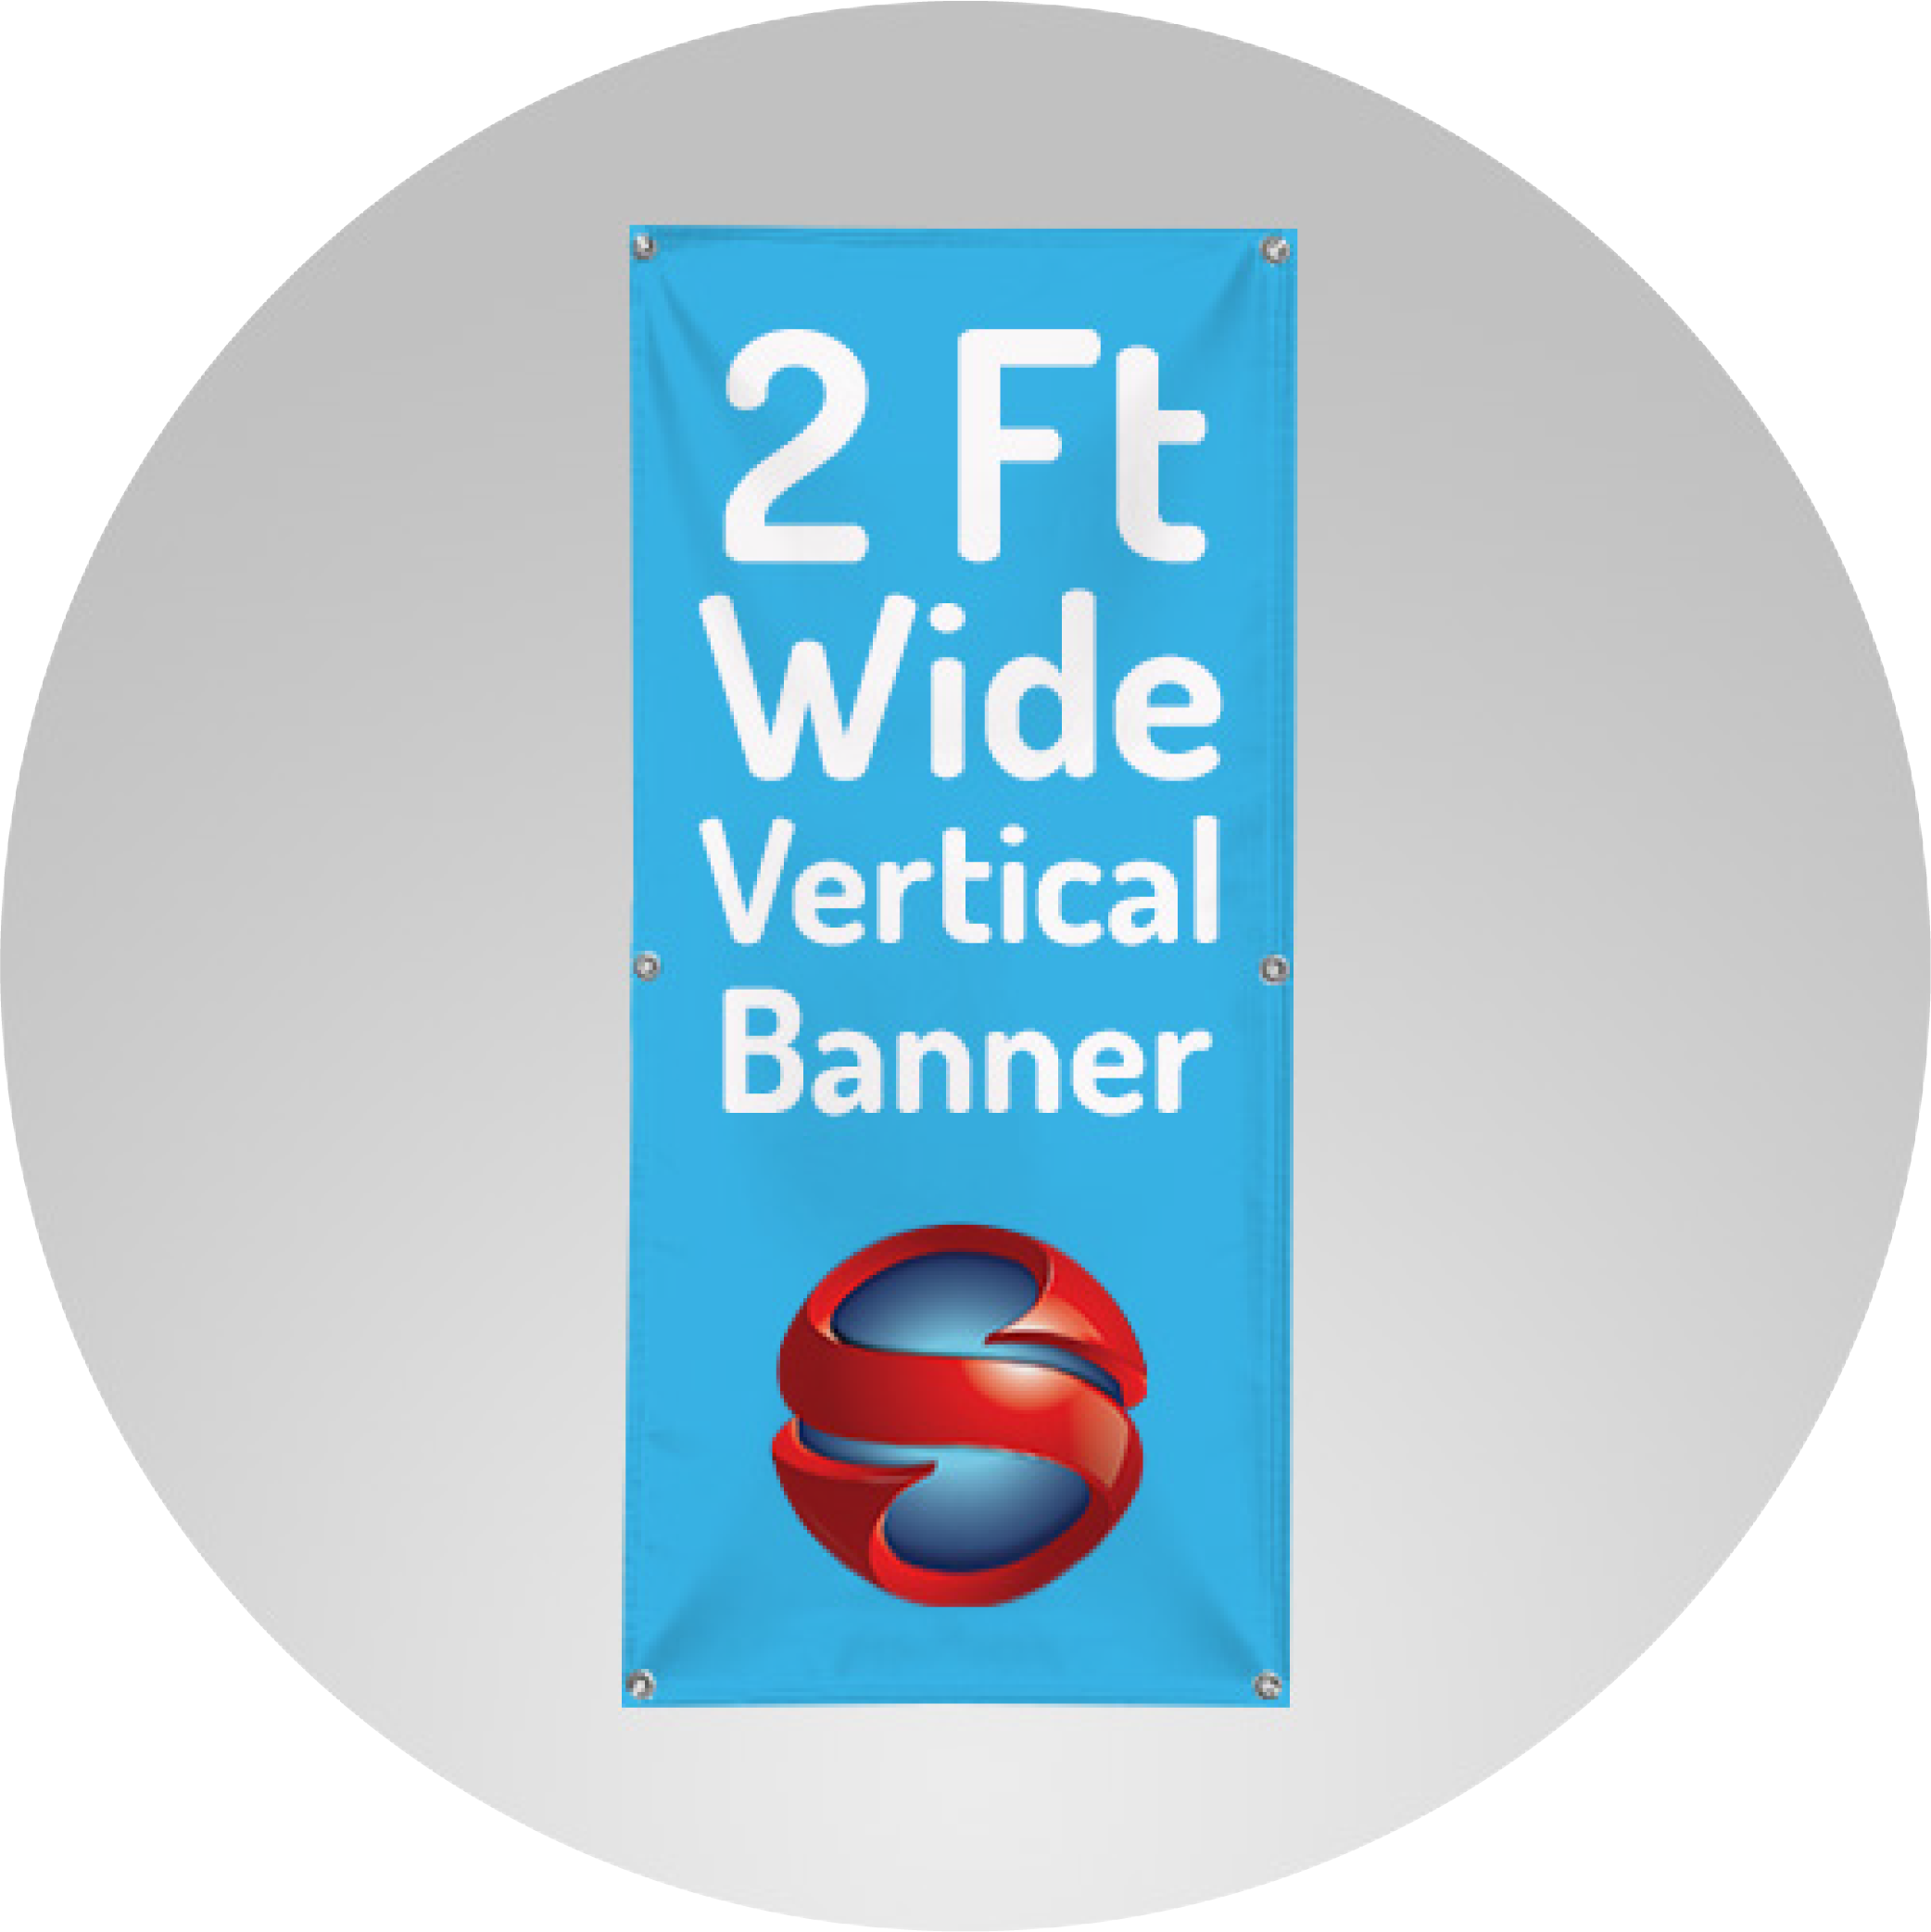 2 Ft Wide Vertical Banner